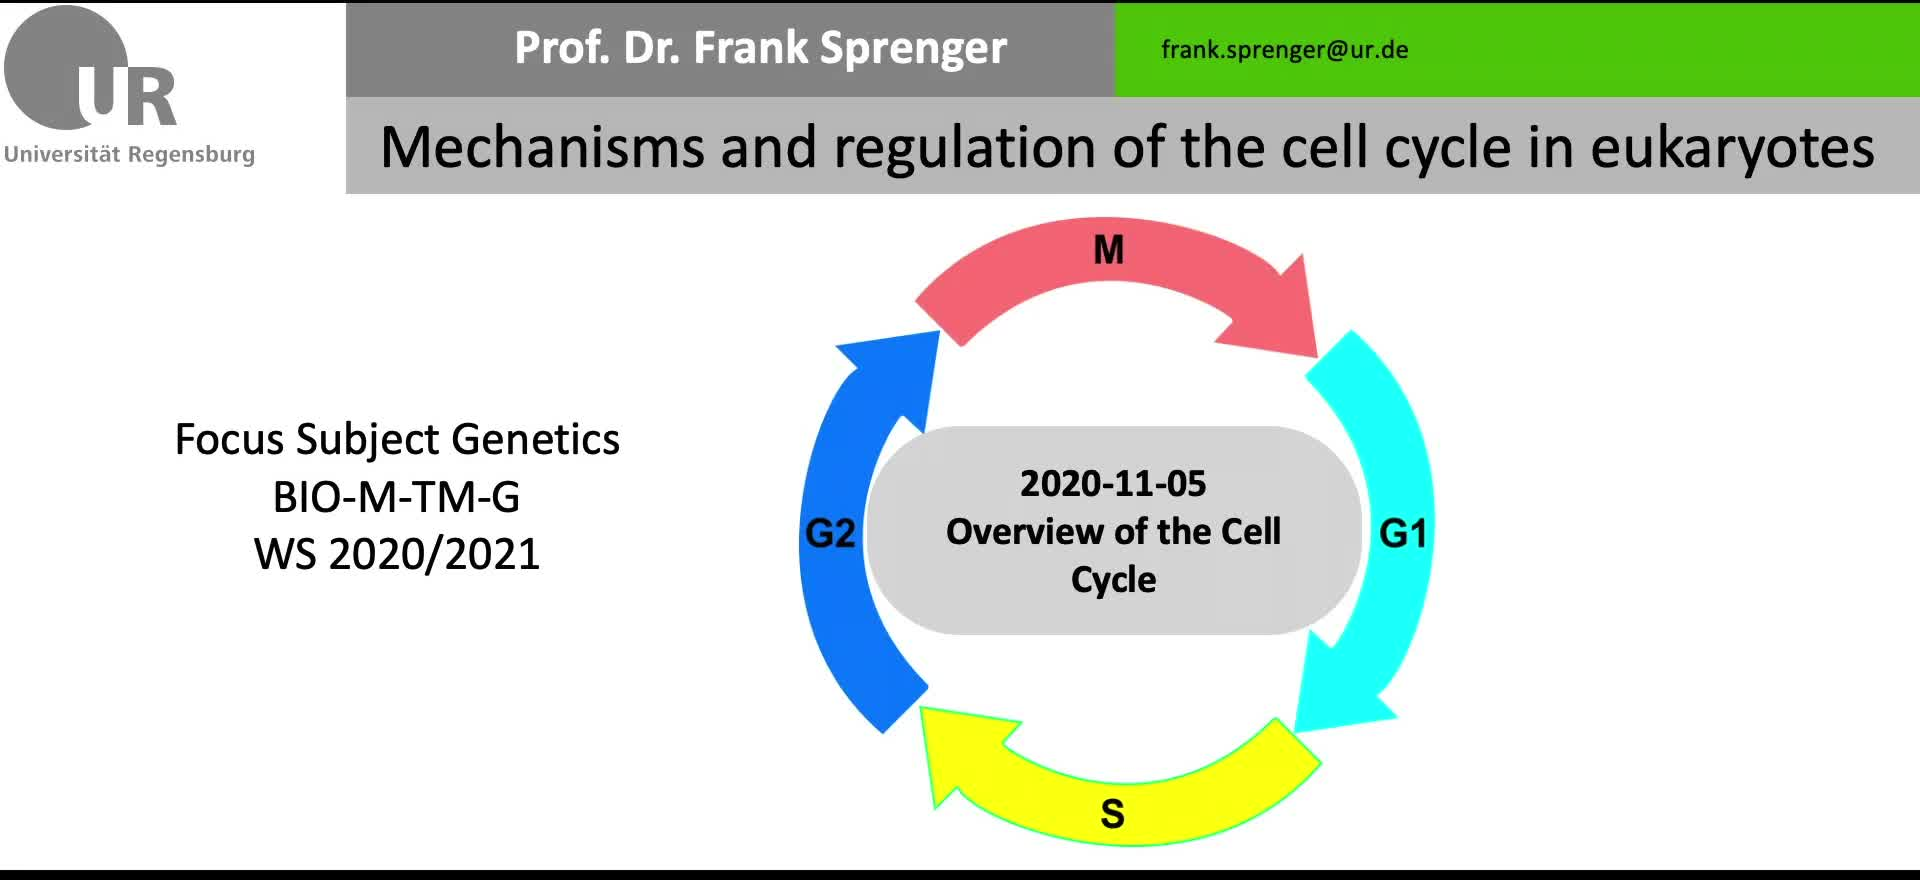 2020-11-05-Overview of the Cell Cycle